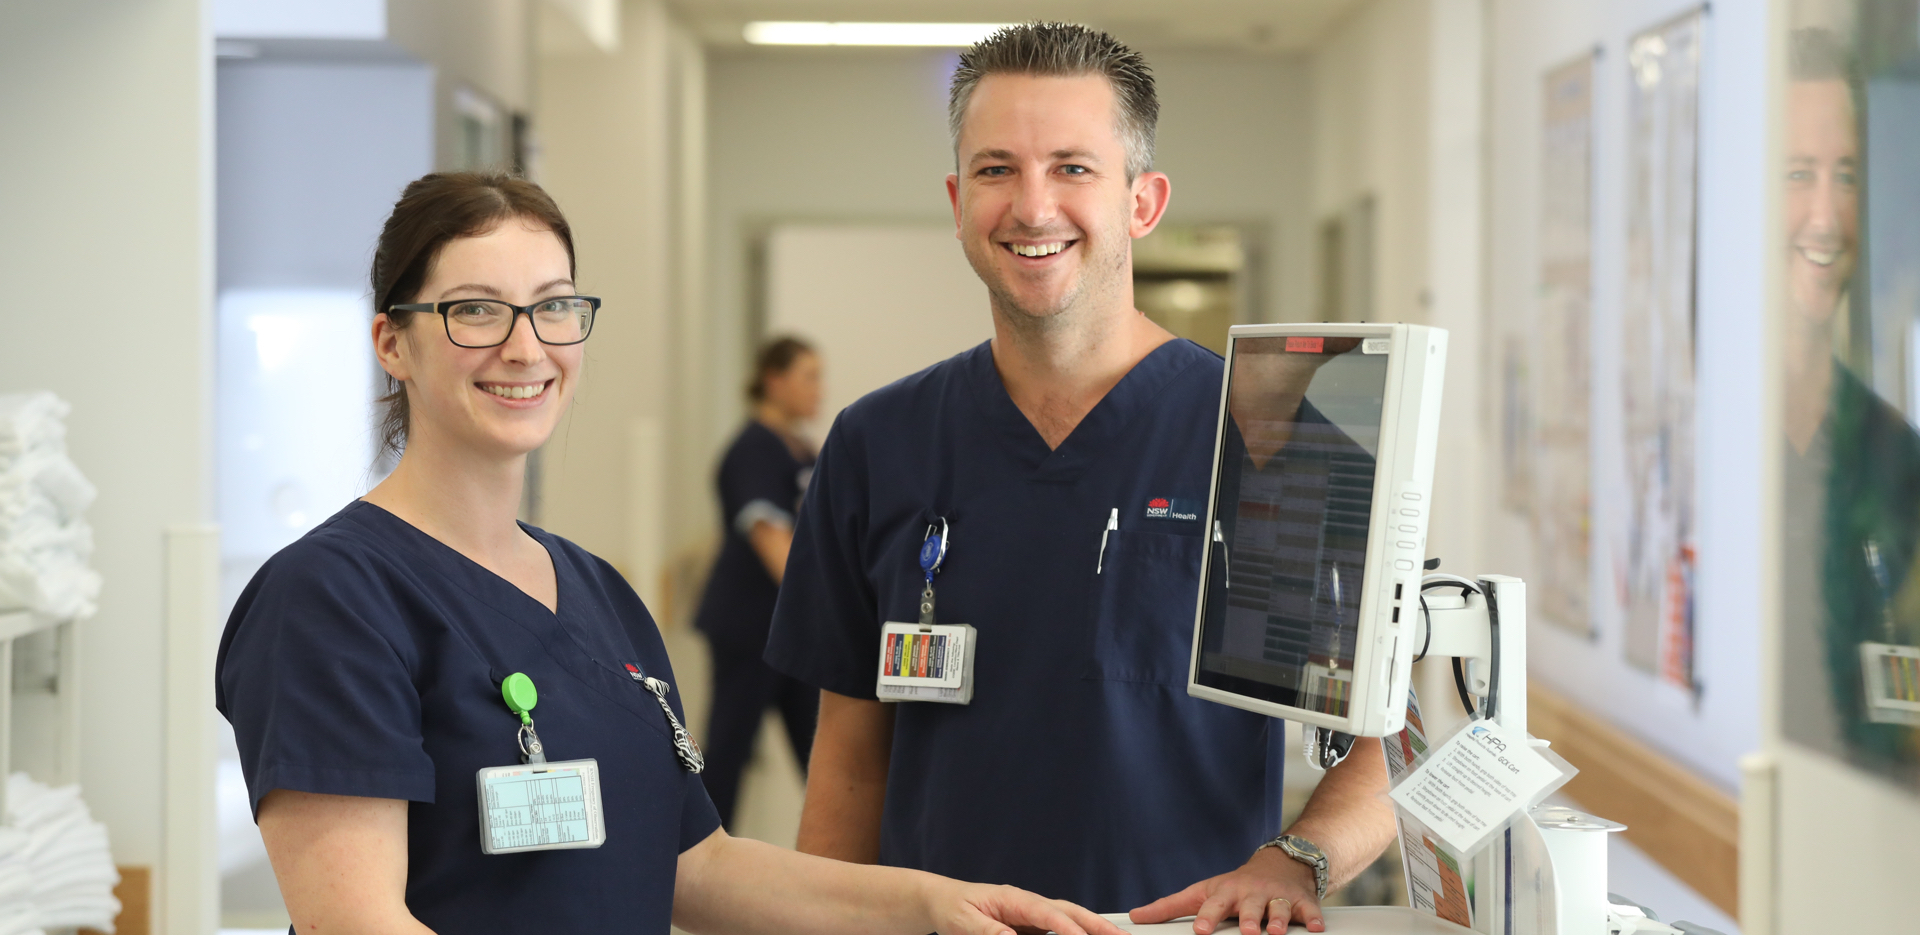 One female and one male clinicans standing in front of a mobile PC.